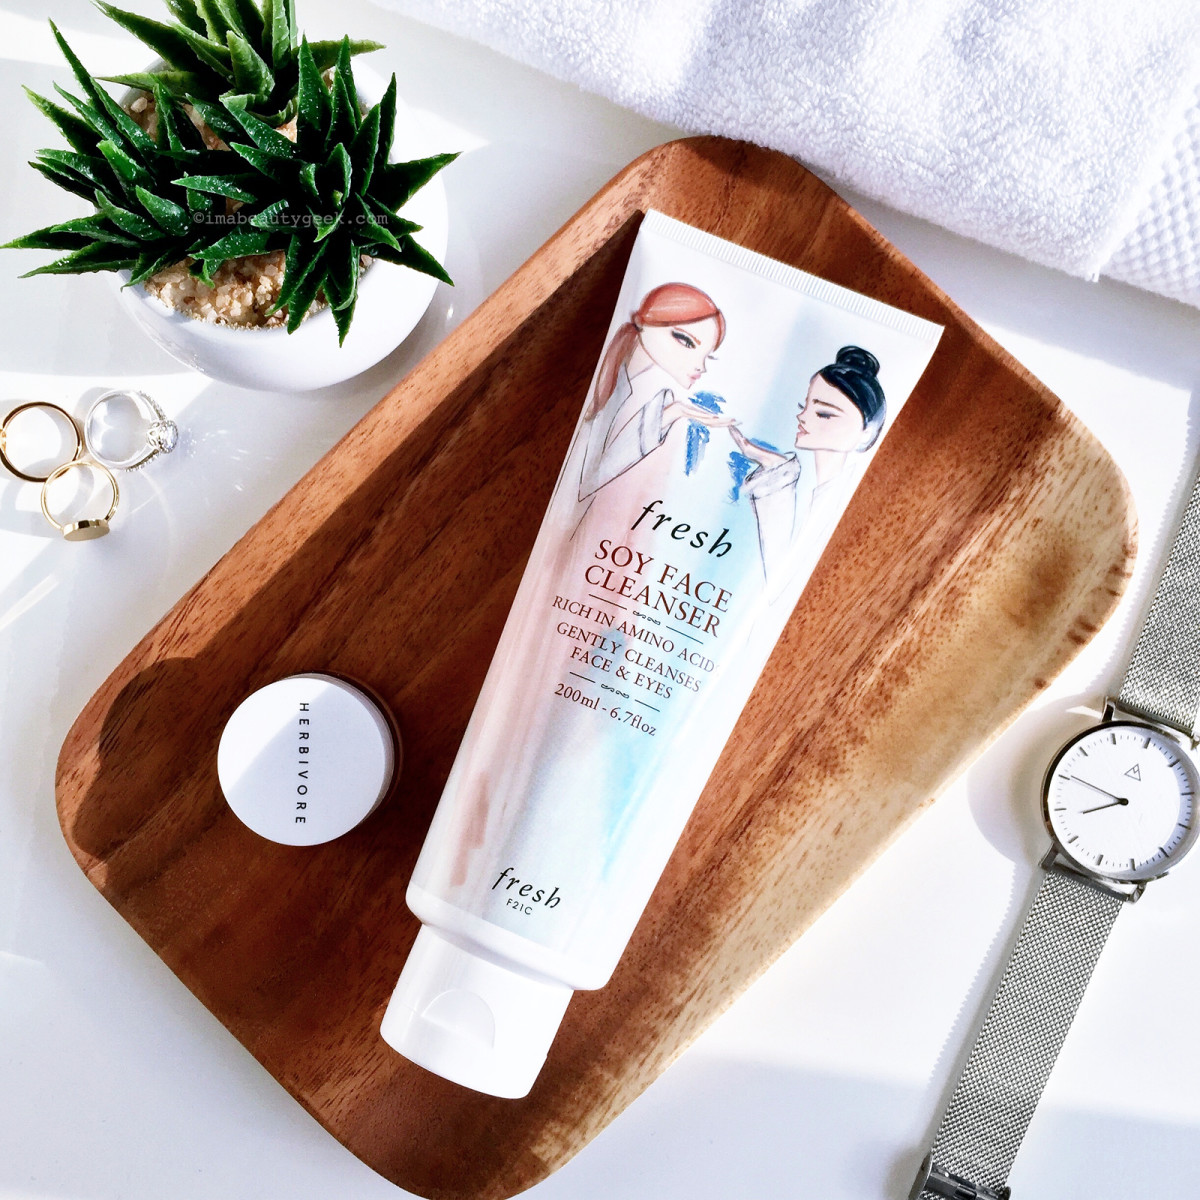 Soy Face Cleanser by fresh #21